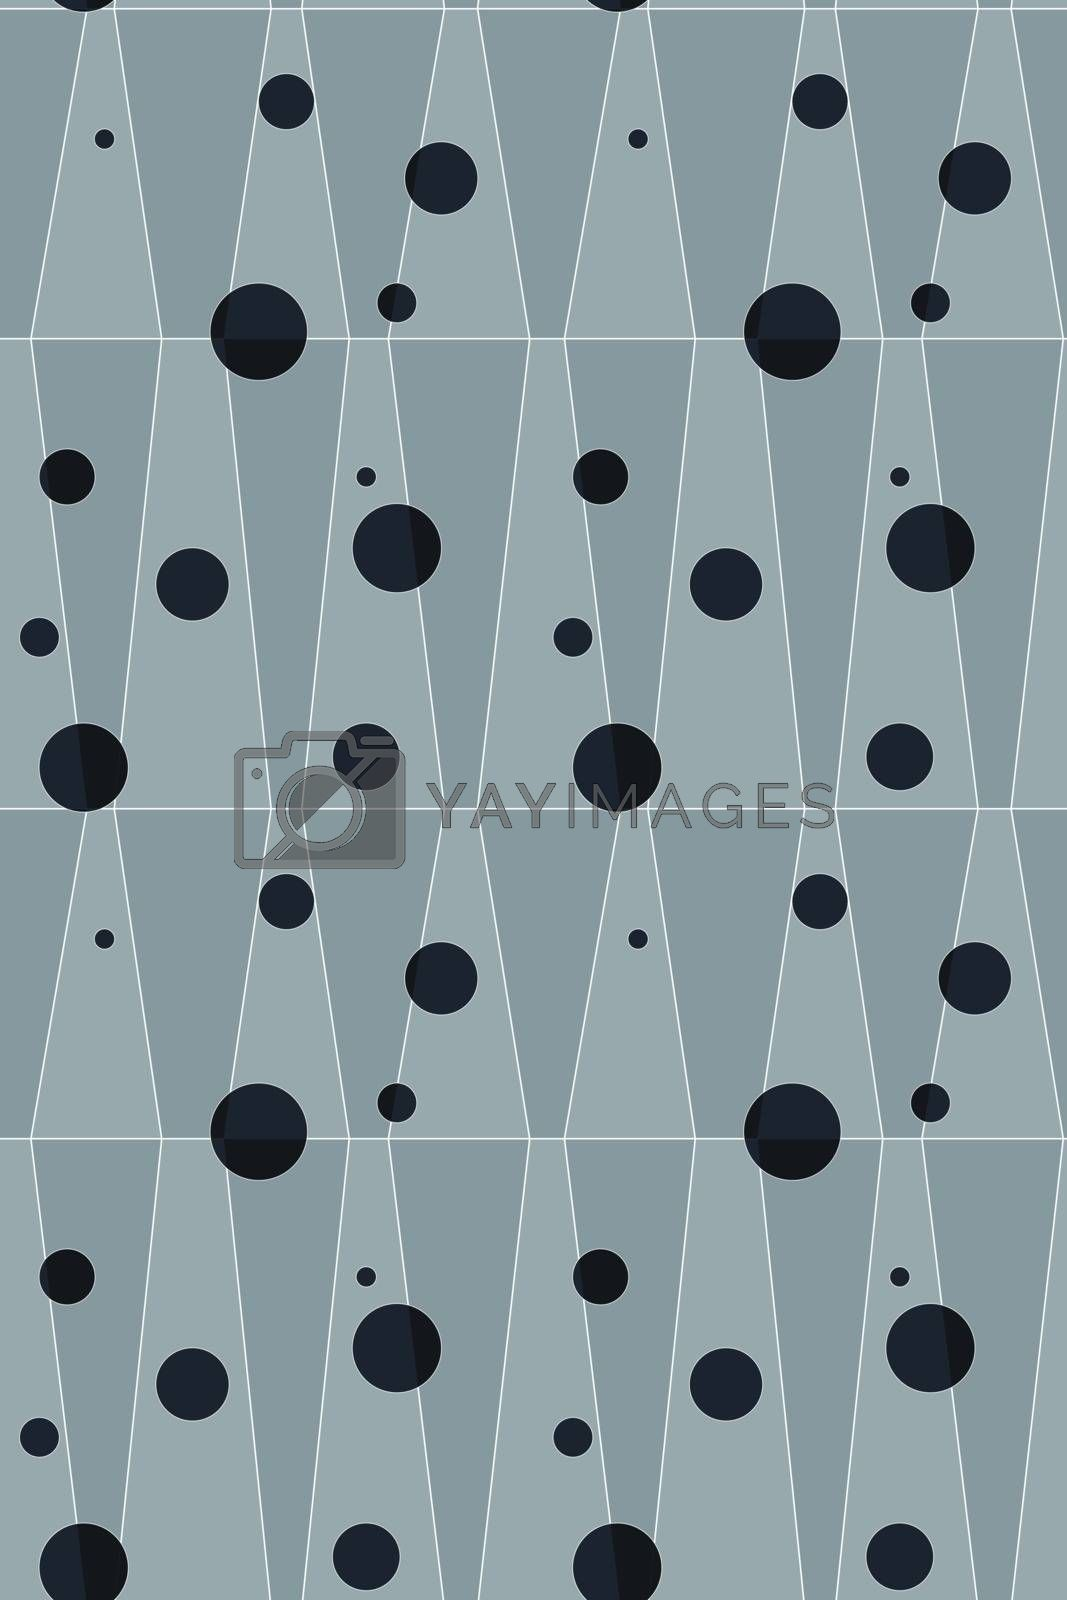 Abstract black dots seamless background.